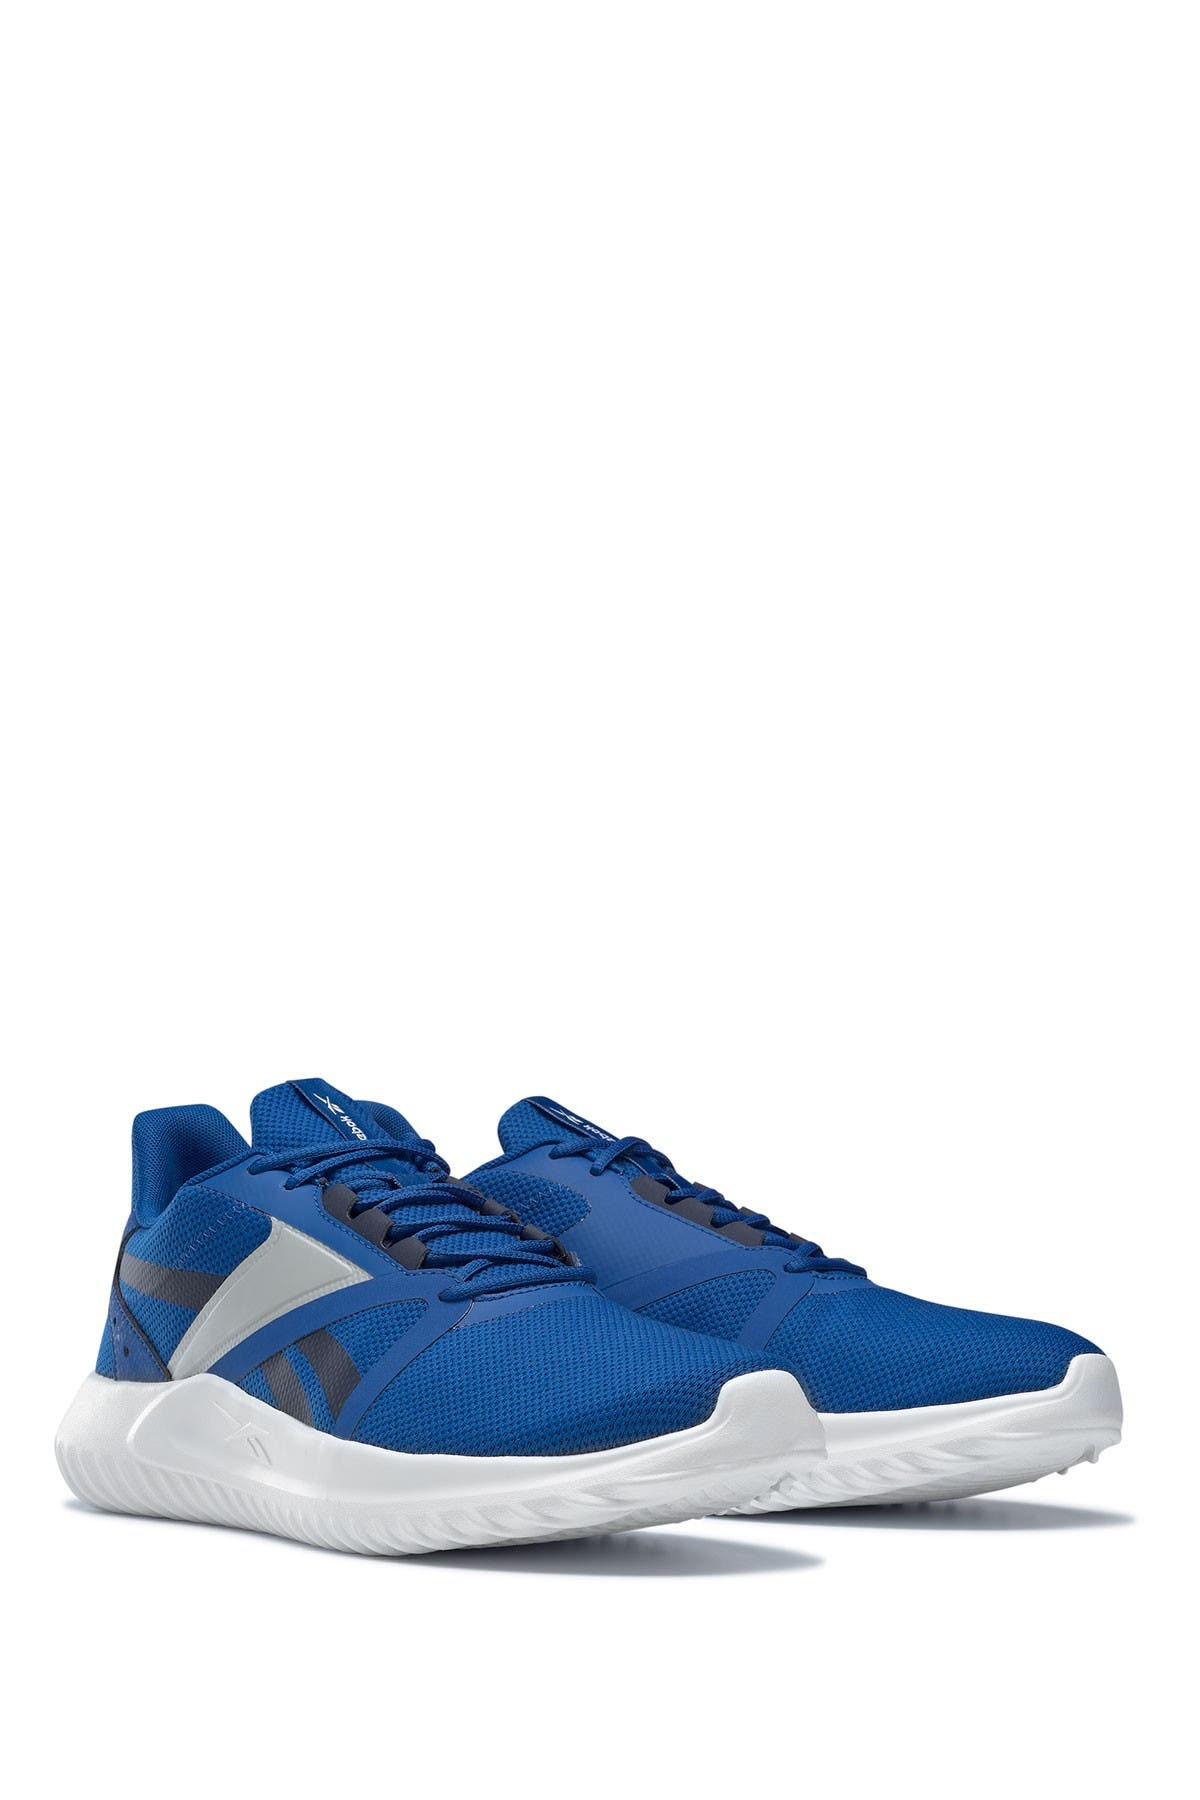 Image of Reebok Energylux 3 Shoe